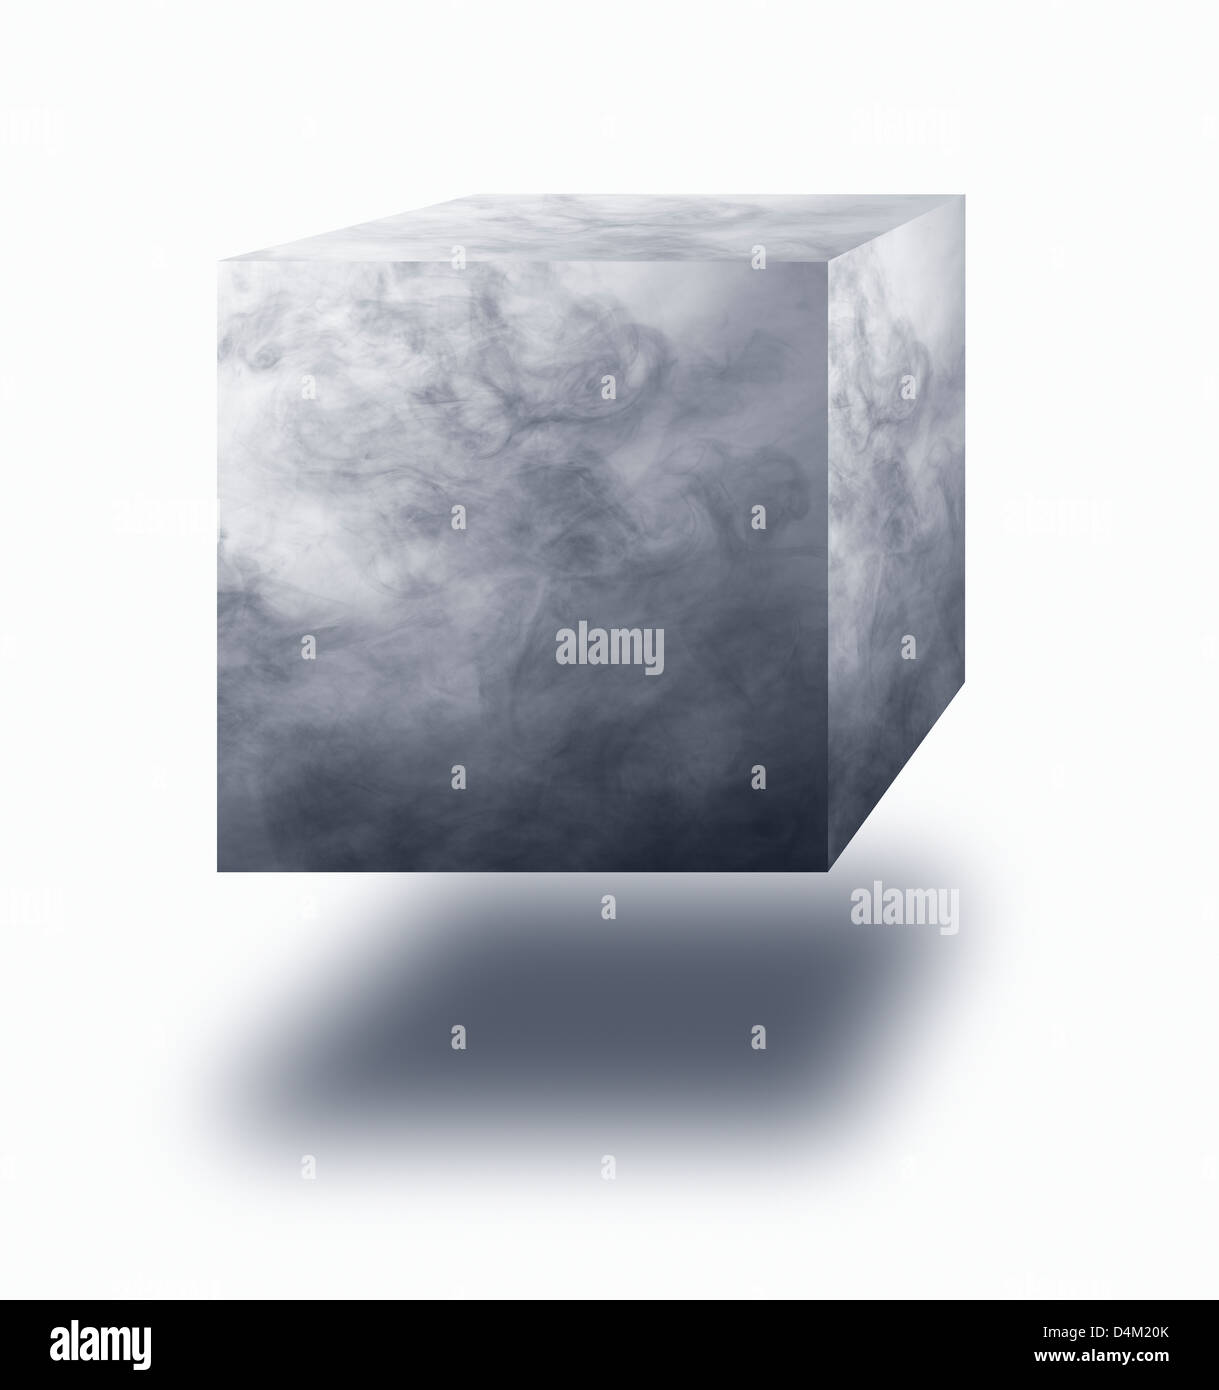 Vapor cube floating in air over white background - Stock Image